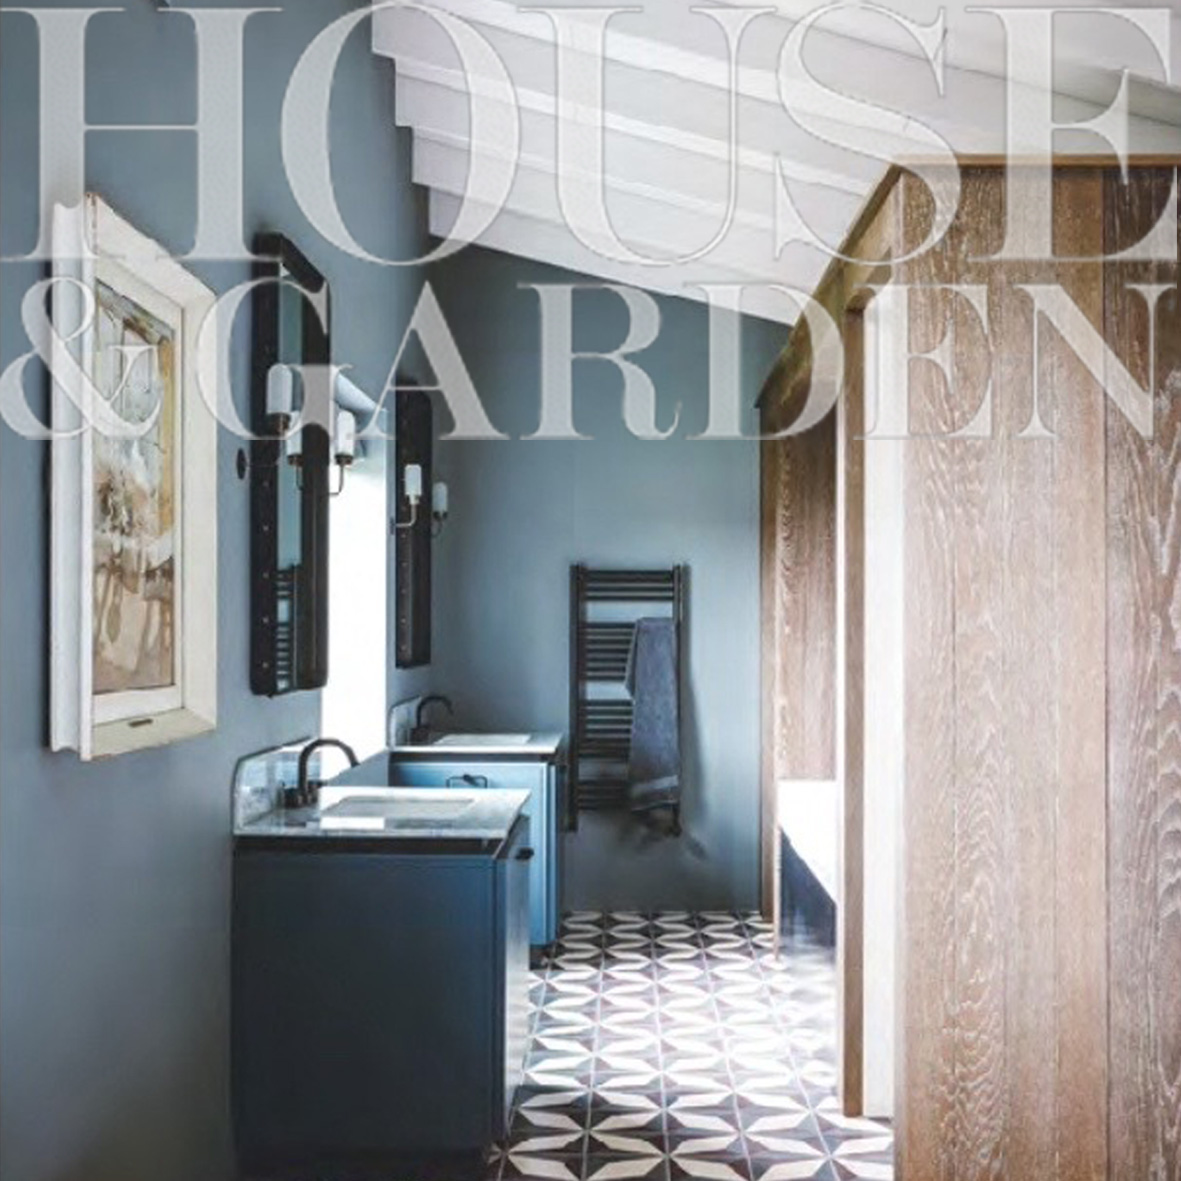 Master bathroom with geometric encaustic tiles, oak clad and steel bathing cabin, flanked by WC and shower cubicles